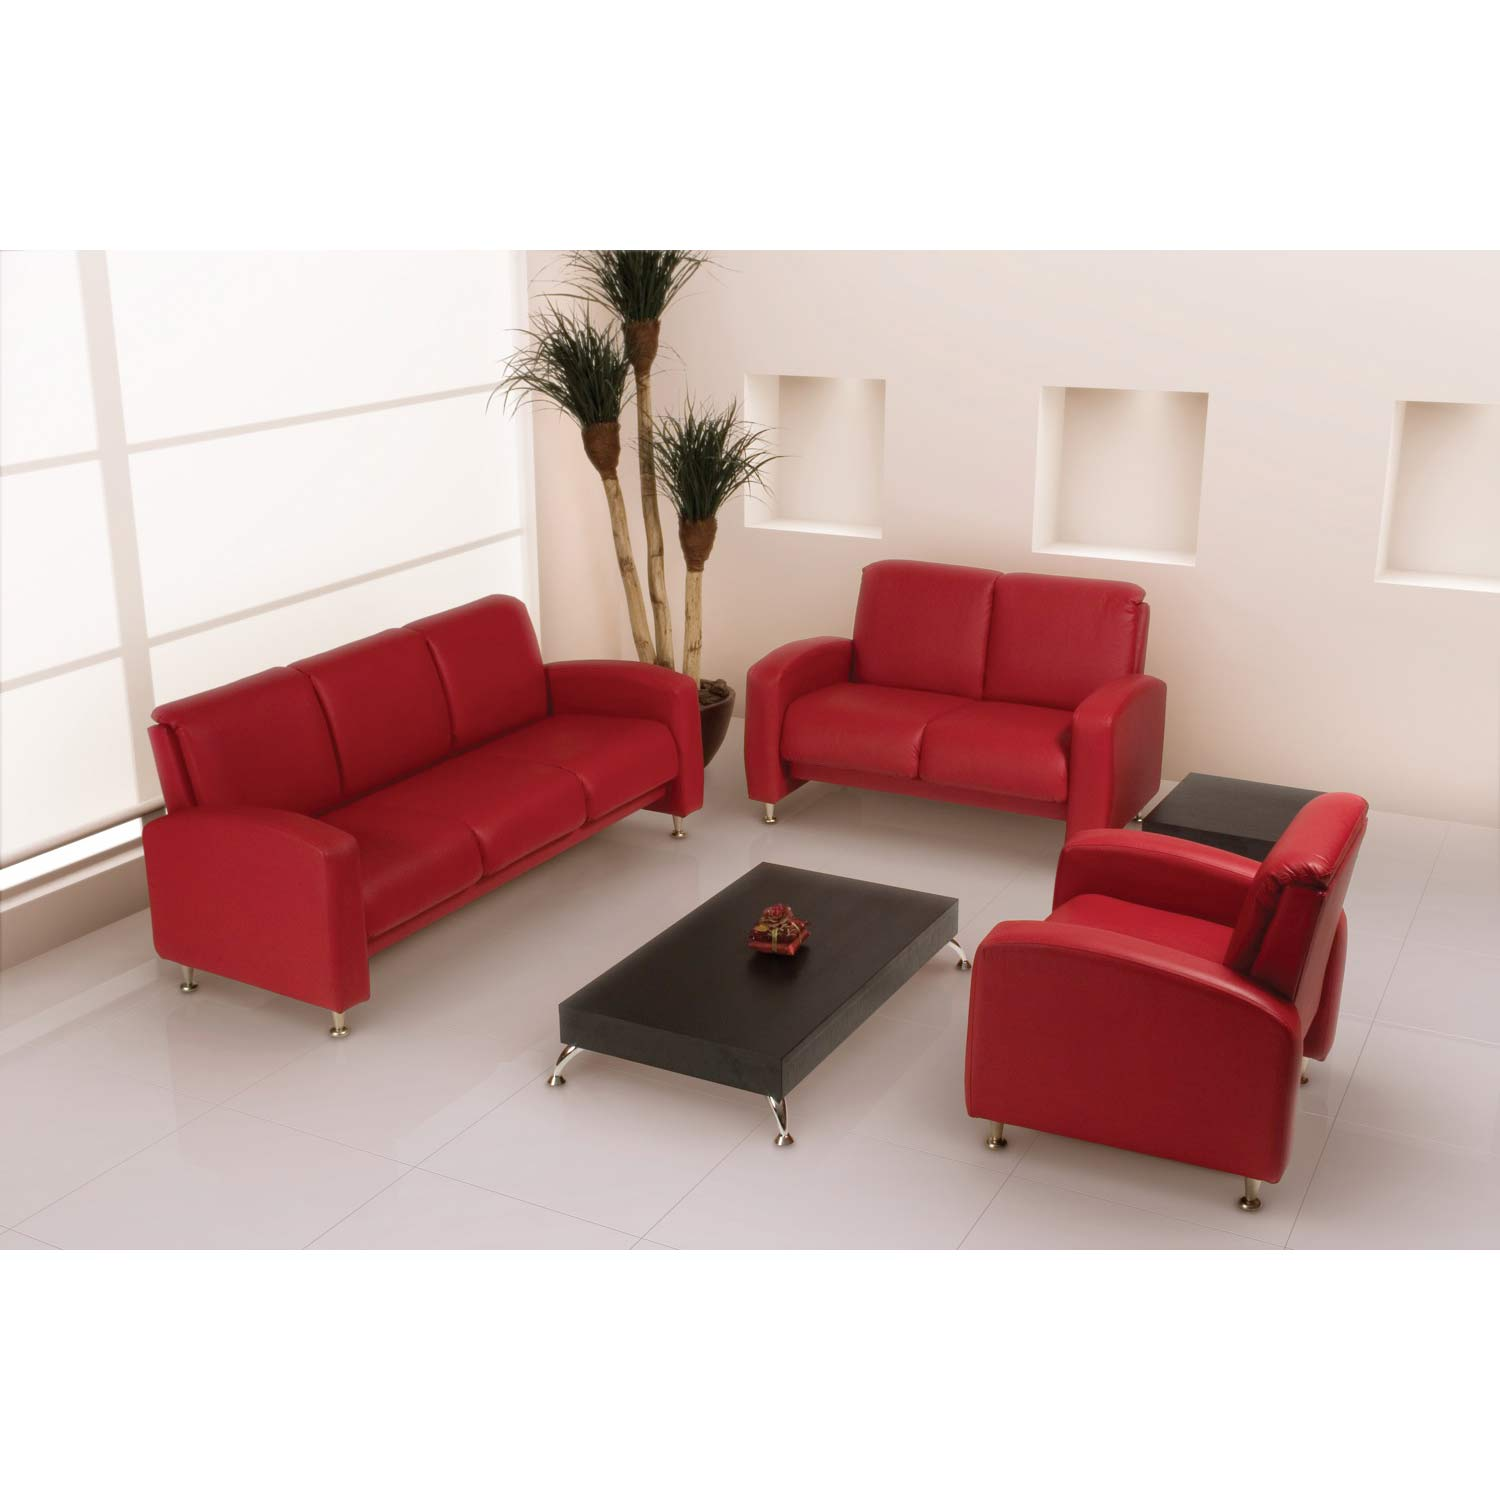 Sofa profile grupo meta soluciones de limpieza muebles for Muebles de oficina outlet